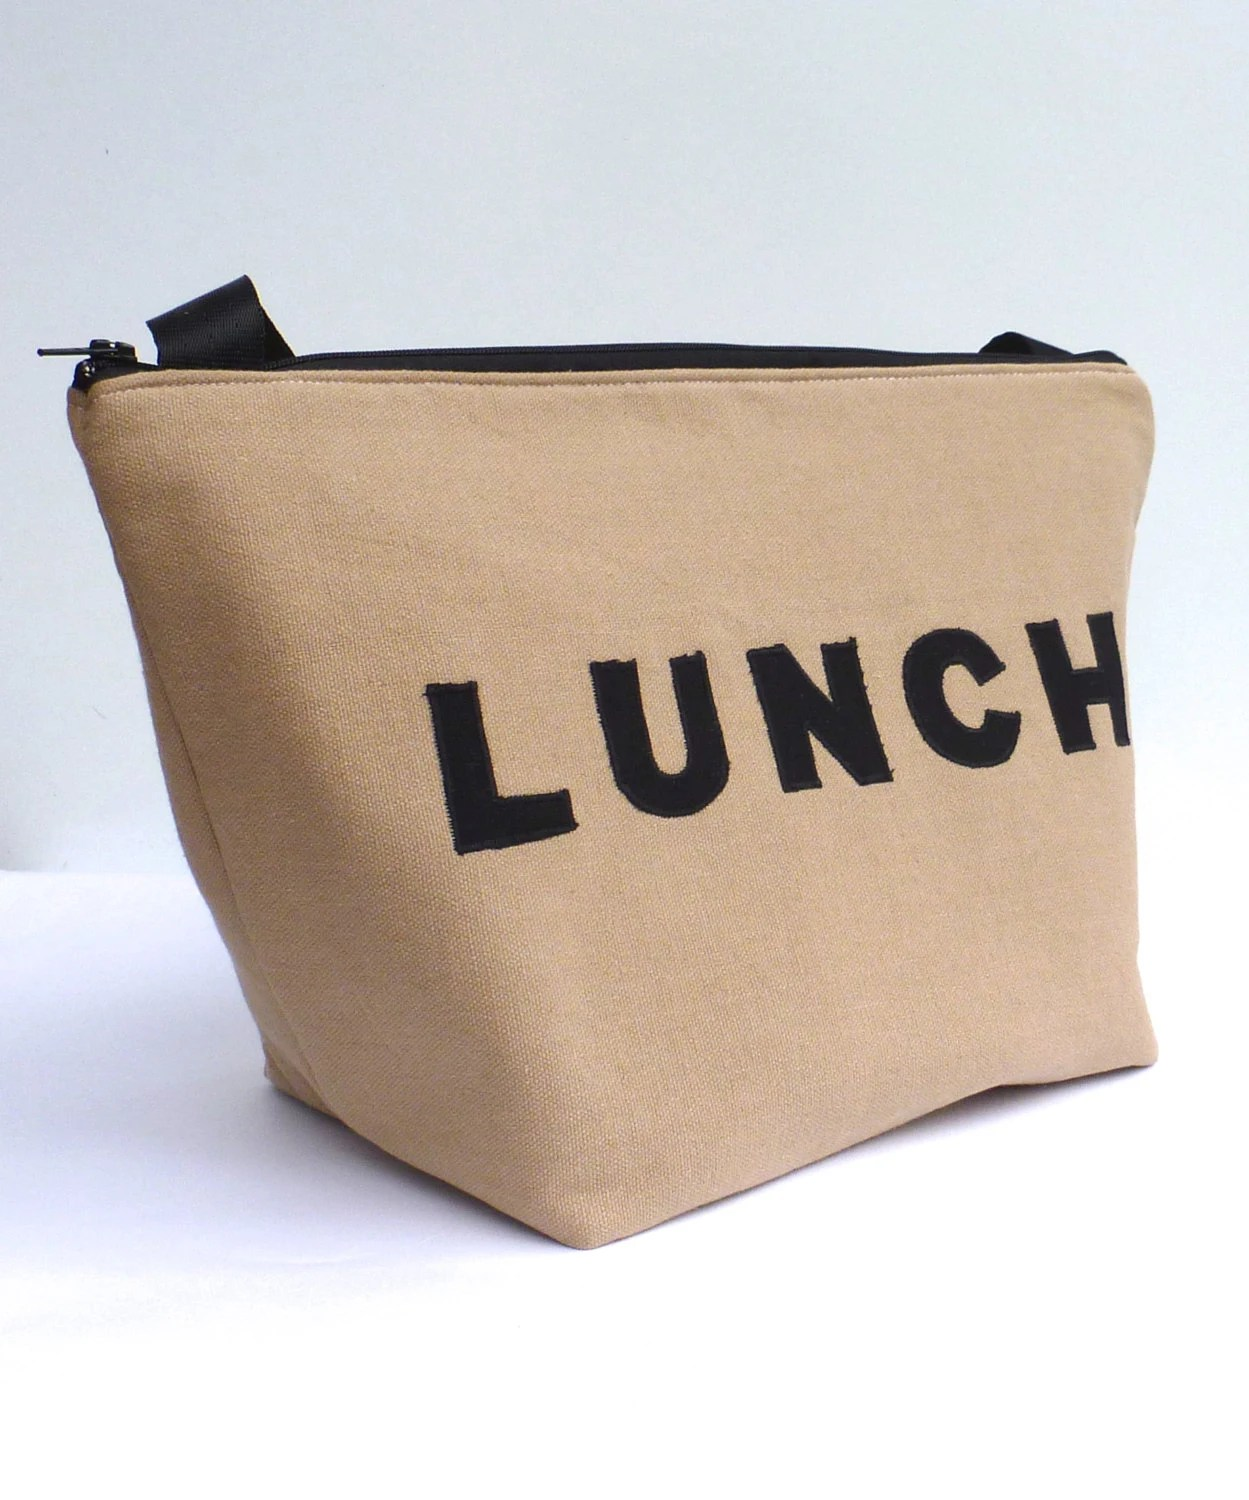 Insulated Lunch Bag Tote  Eco Friendly Zip Brown Lunch Bag Man Lunch Bag by BonTons - BonTons